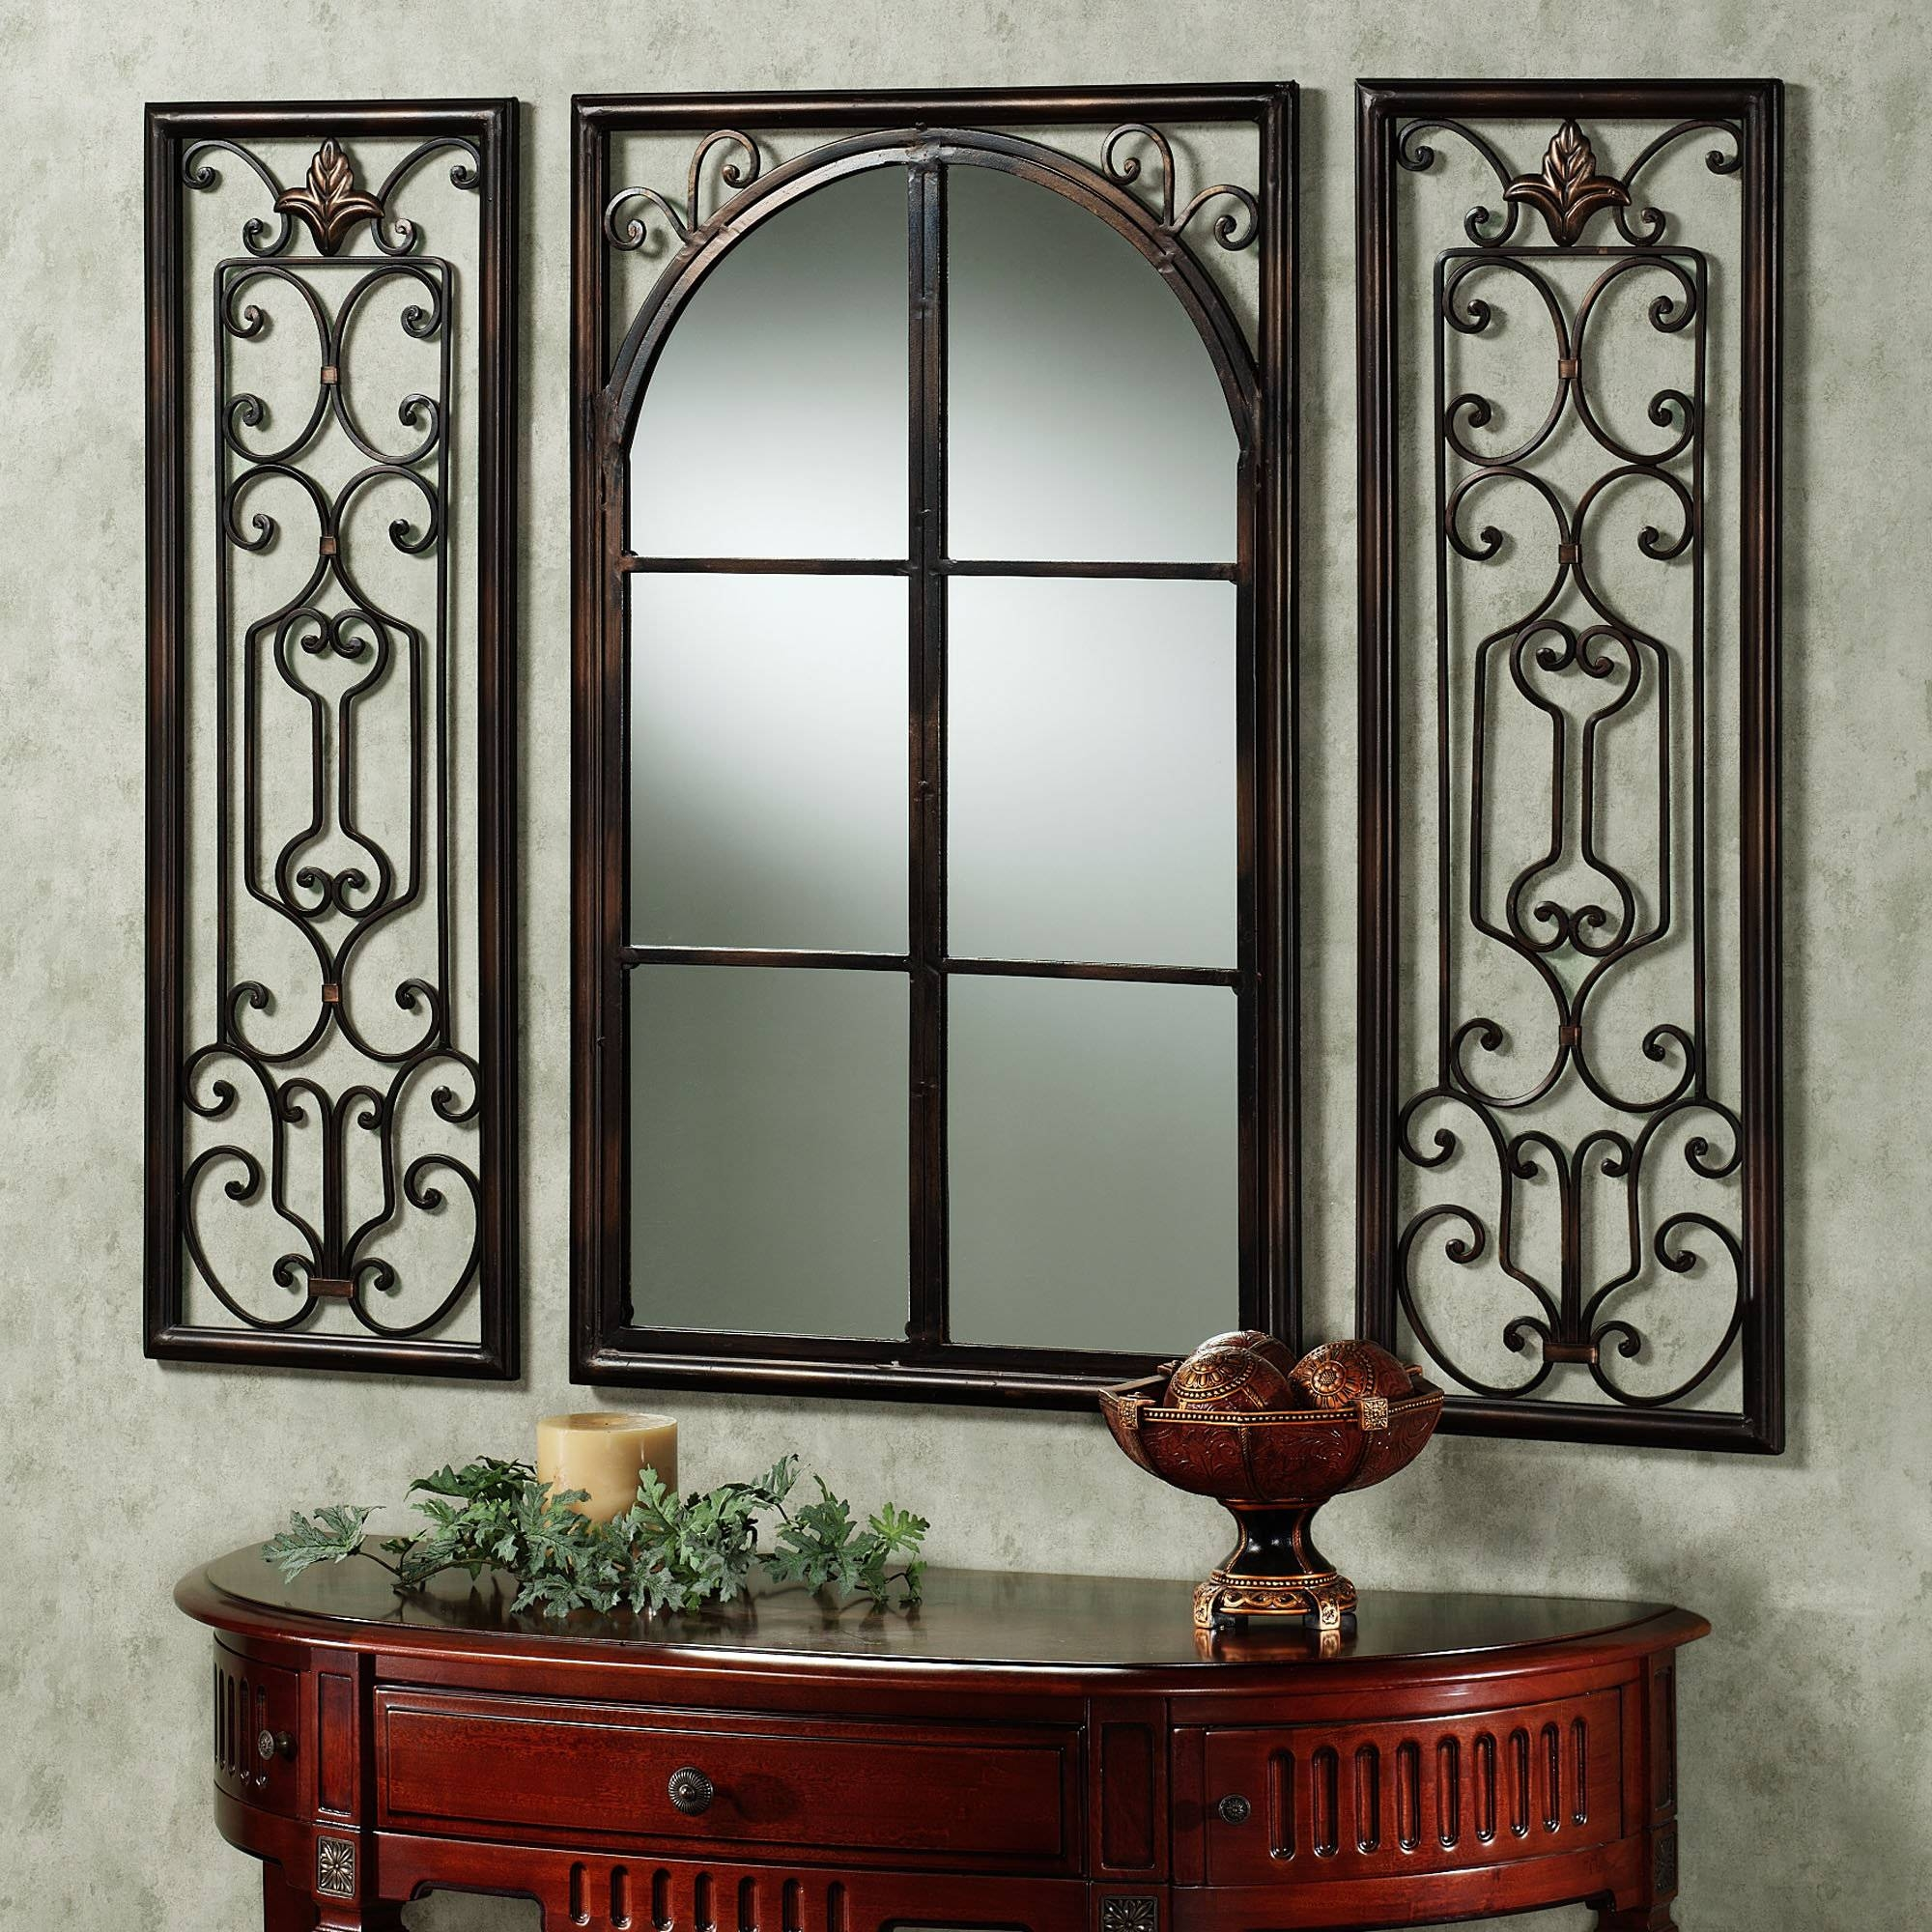 Decorative Frames For Mirrors 65 Stunning Decor With Hand Forged with Bronze Wall Mirrors (Image 7 of 25)